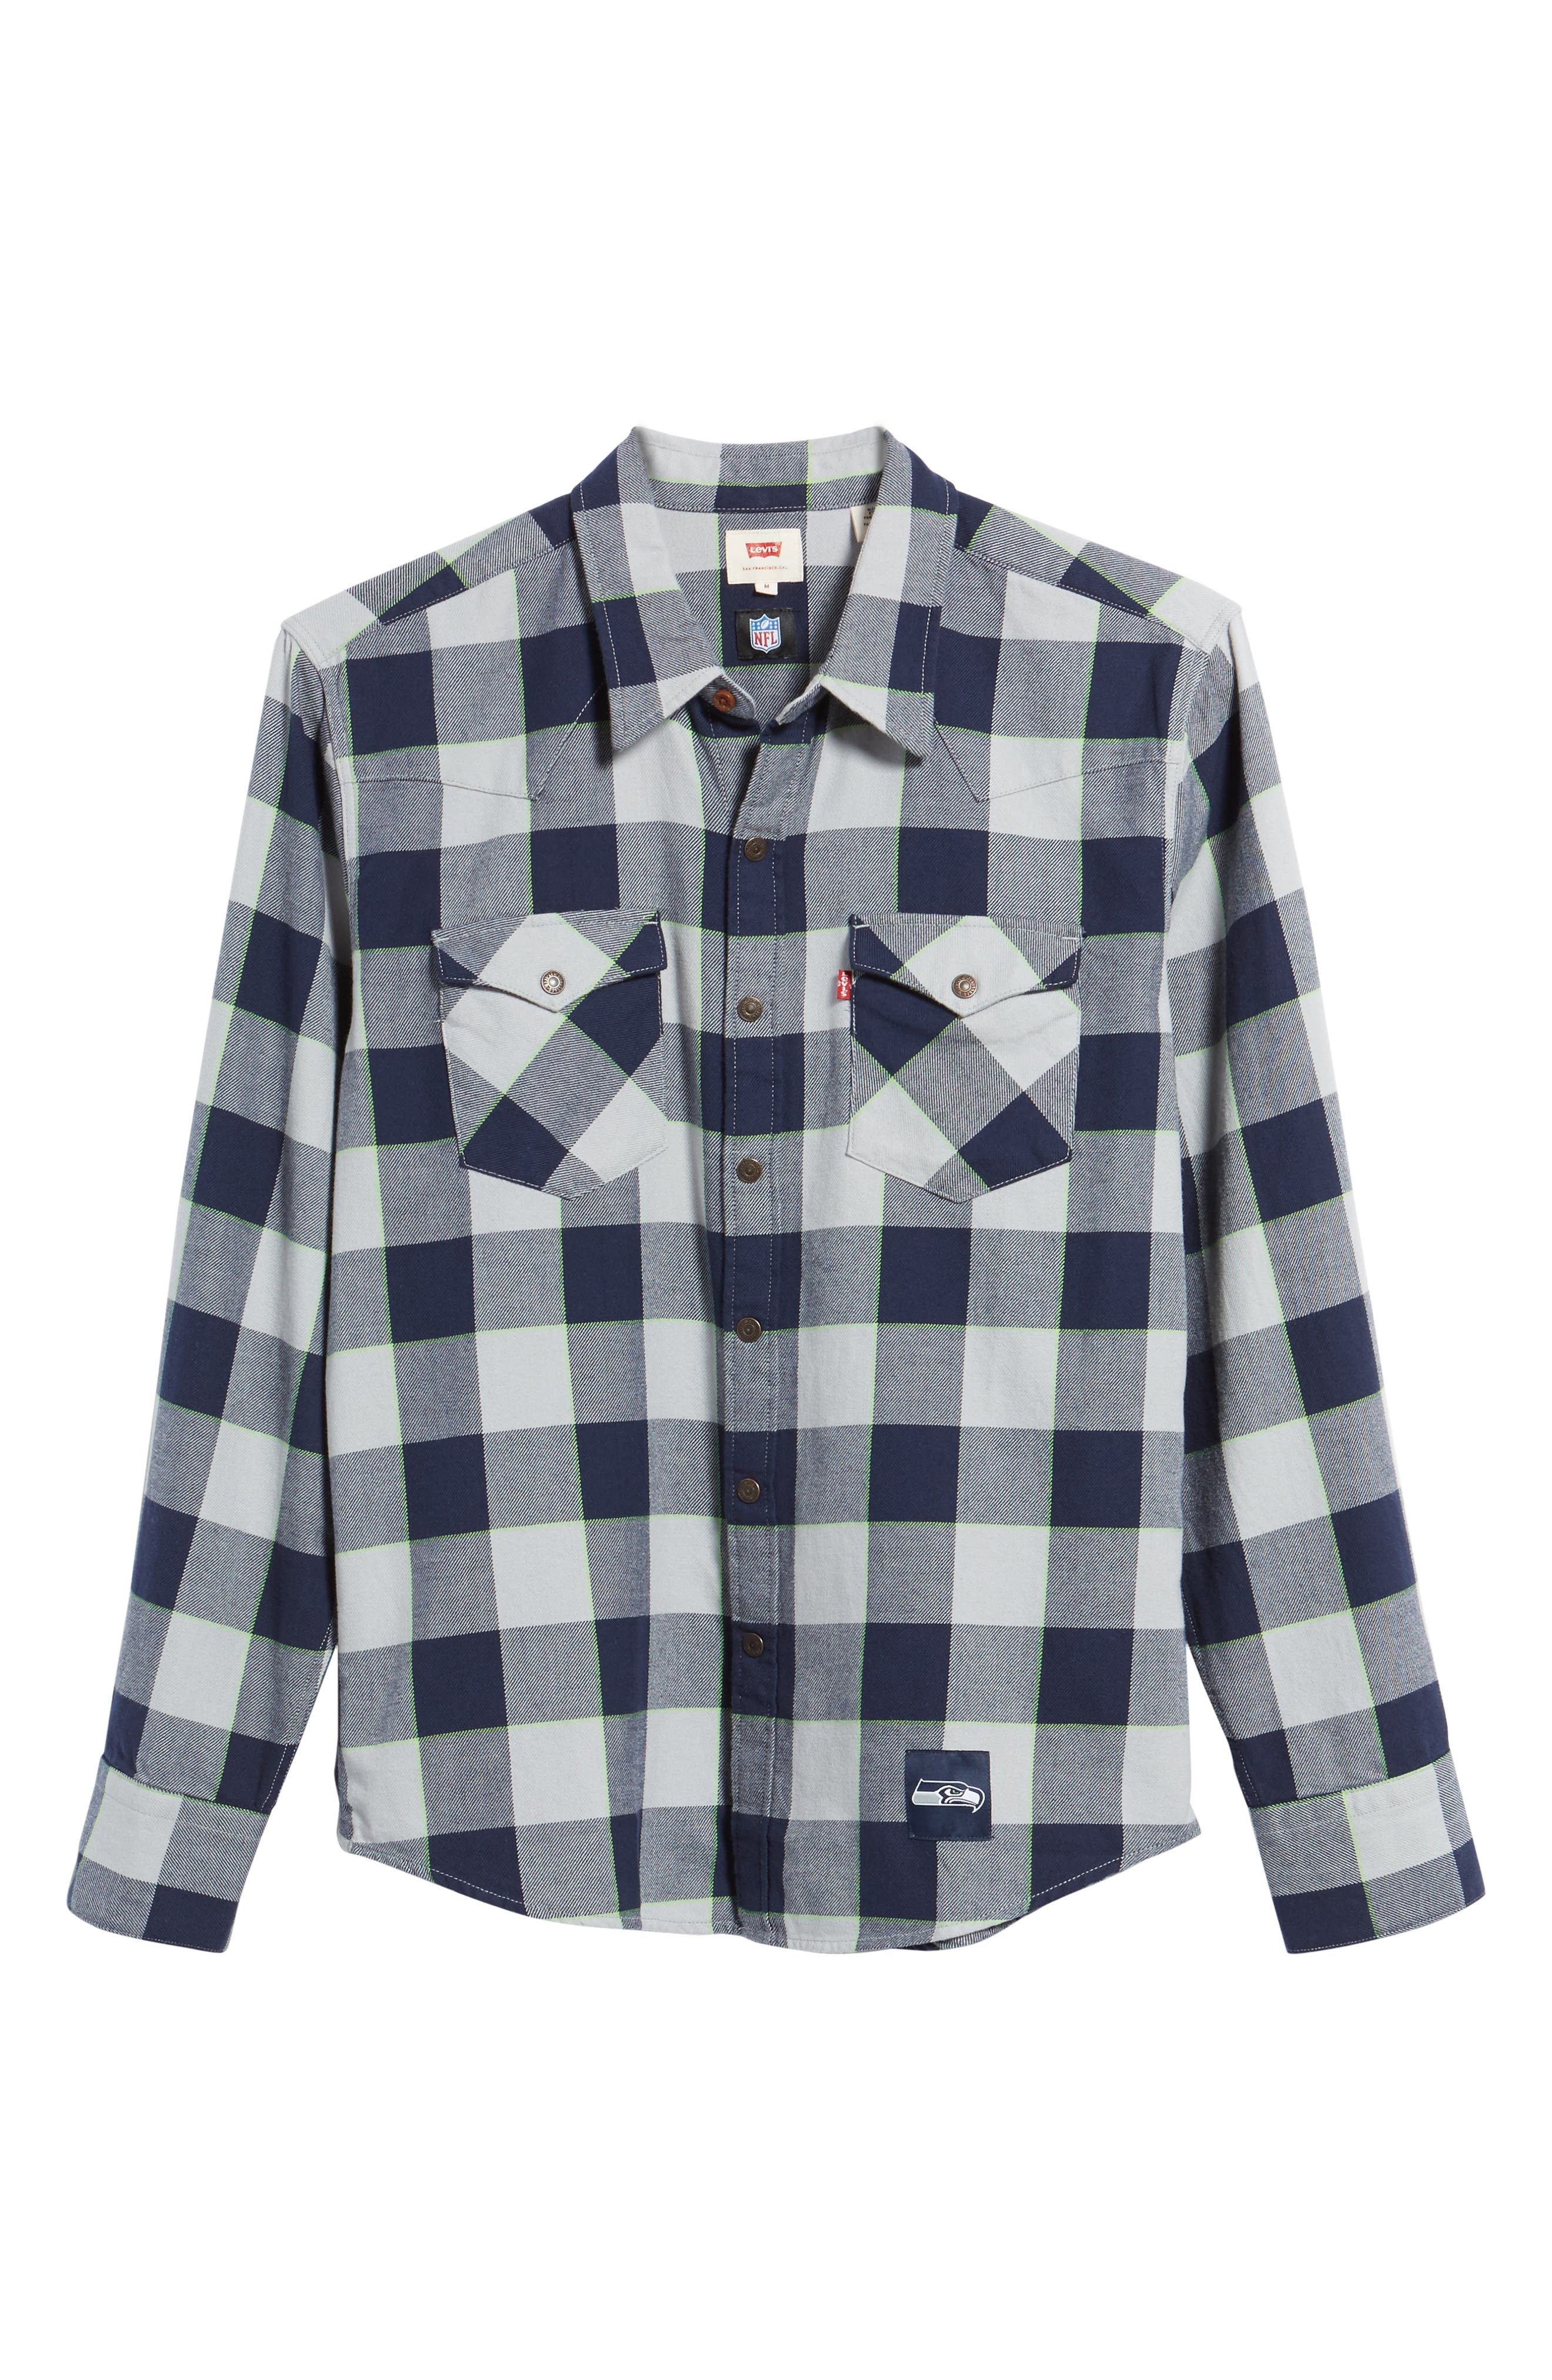 NFL Seahawks - Barstow Plaid Western Shirt,                             Alternate thumbnail 6, color,                             Blue Plaid